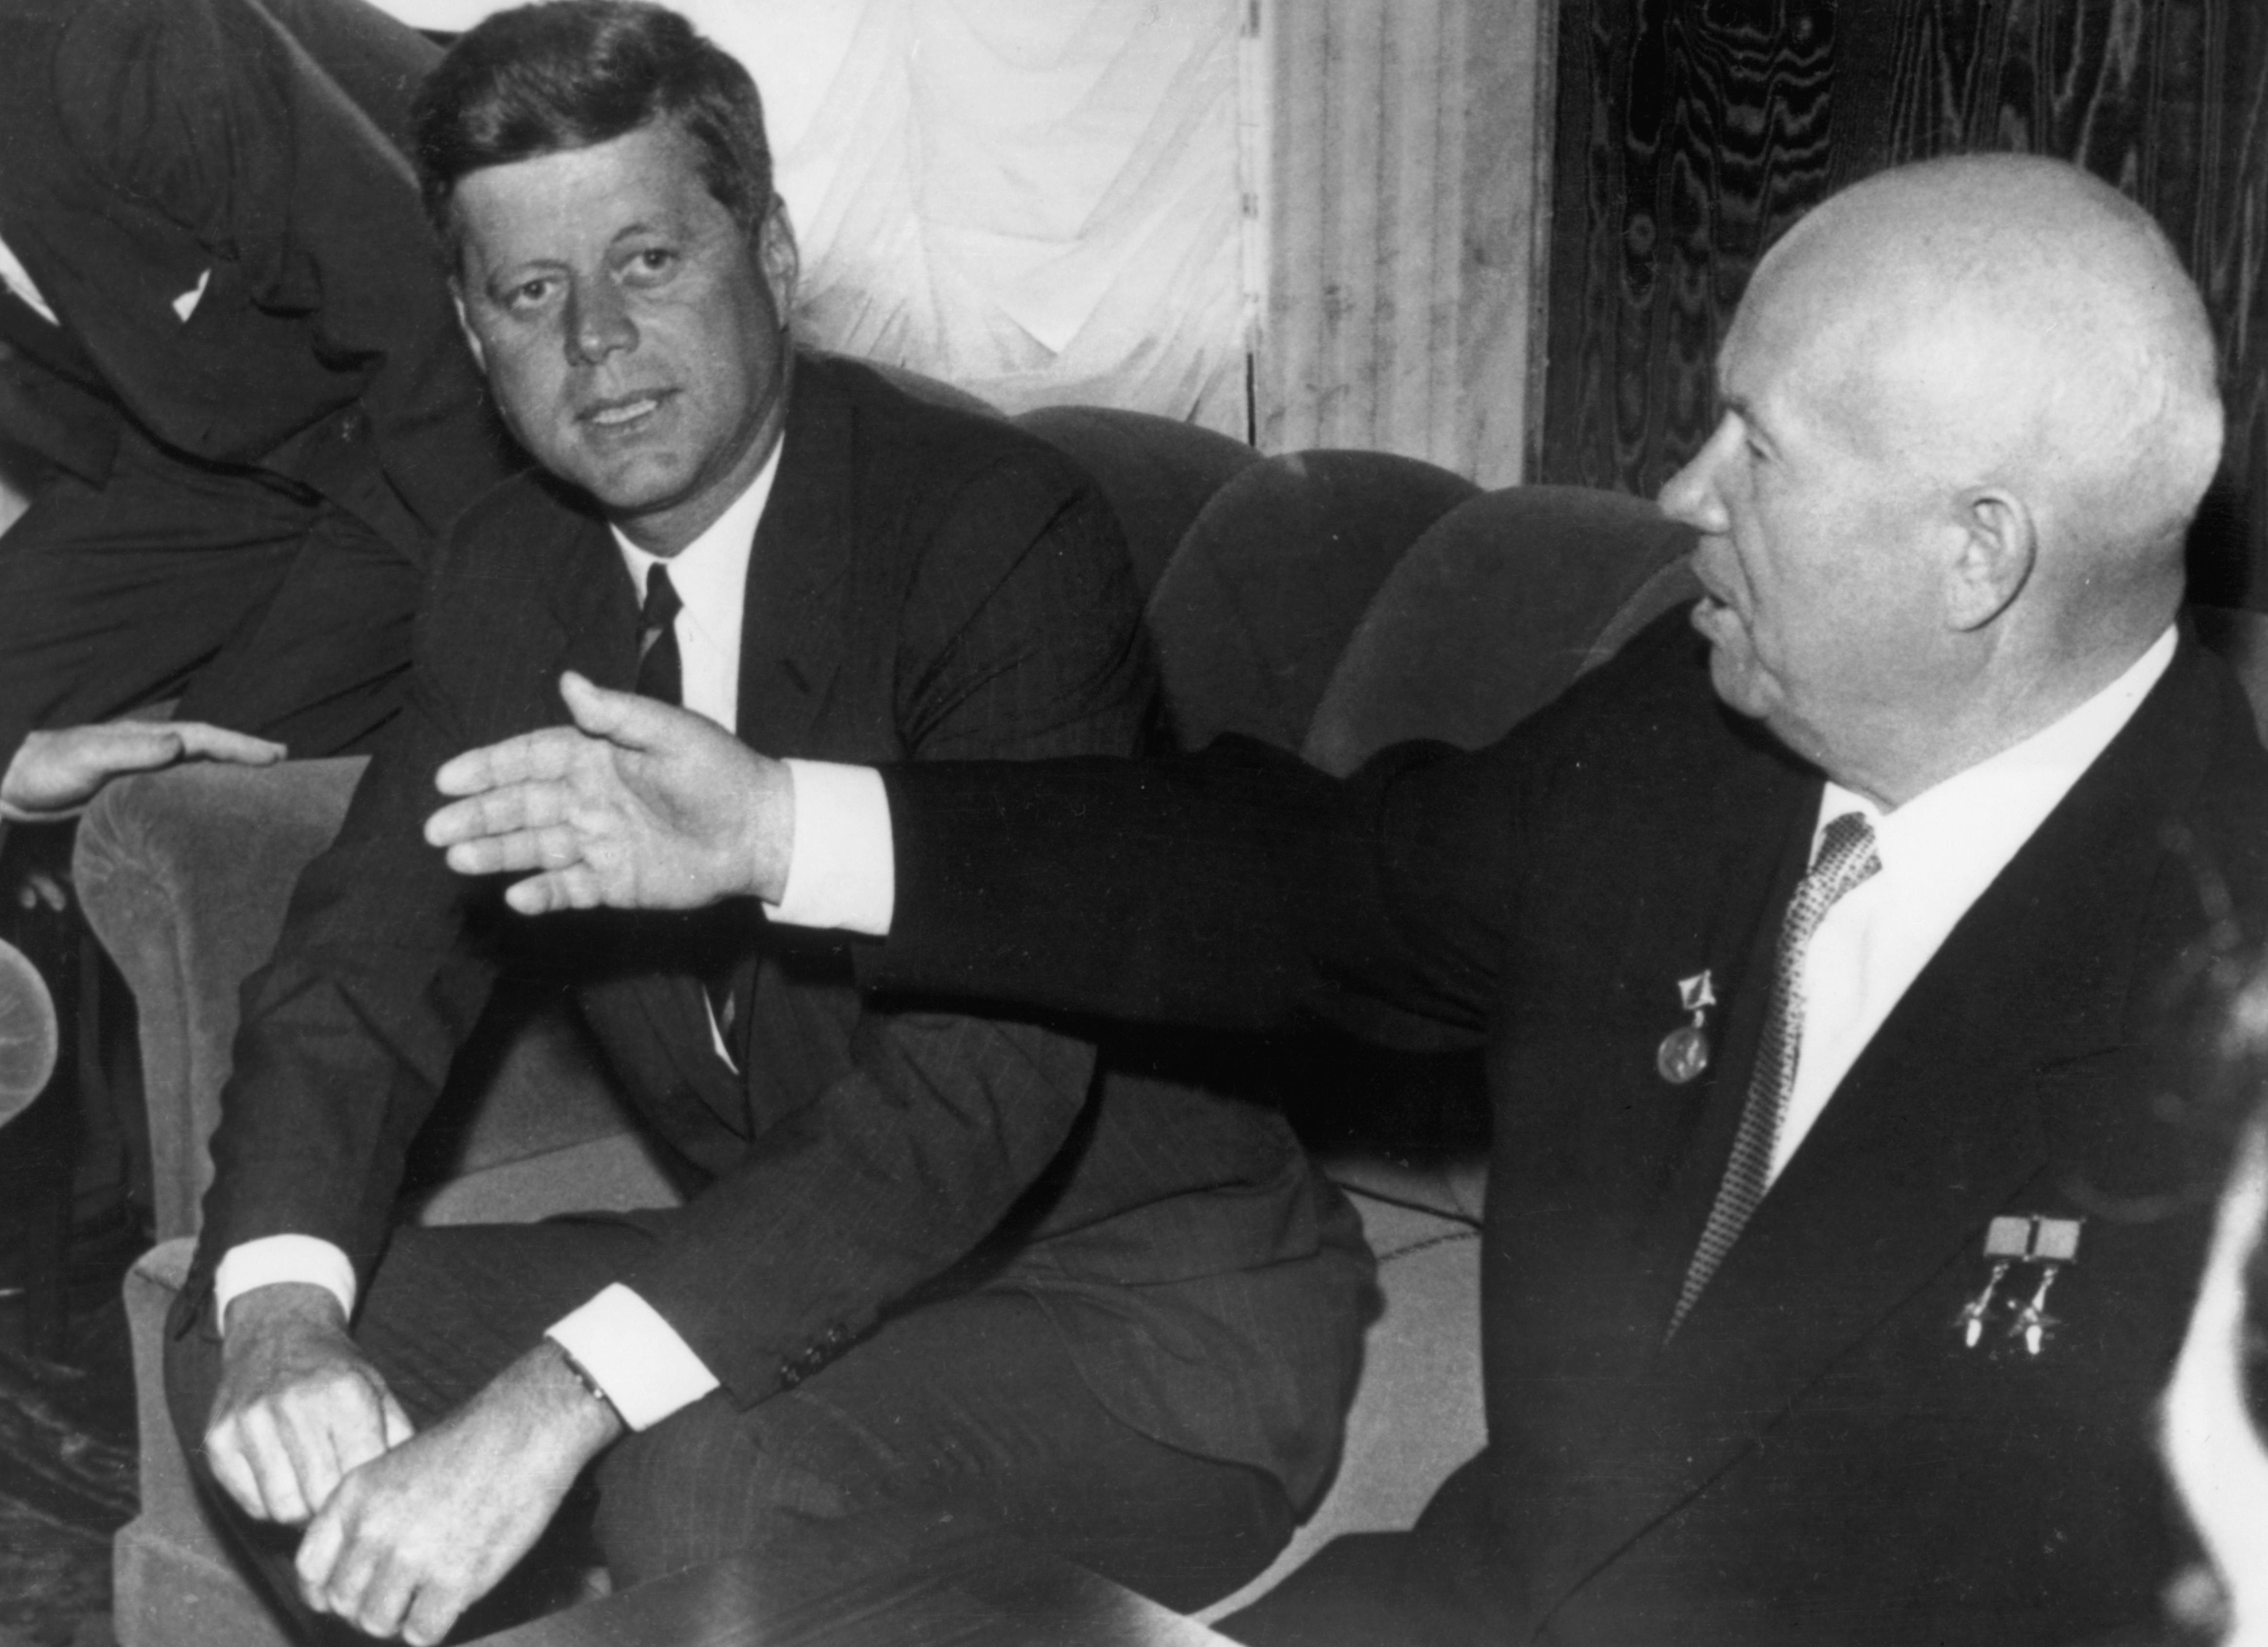 Nikita Khrushchev and John F. Kennedy